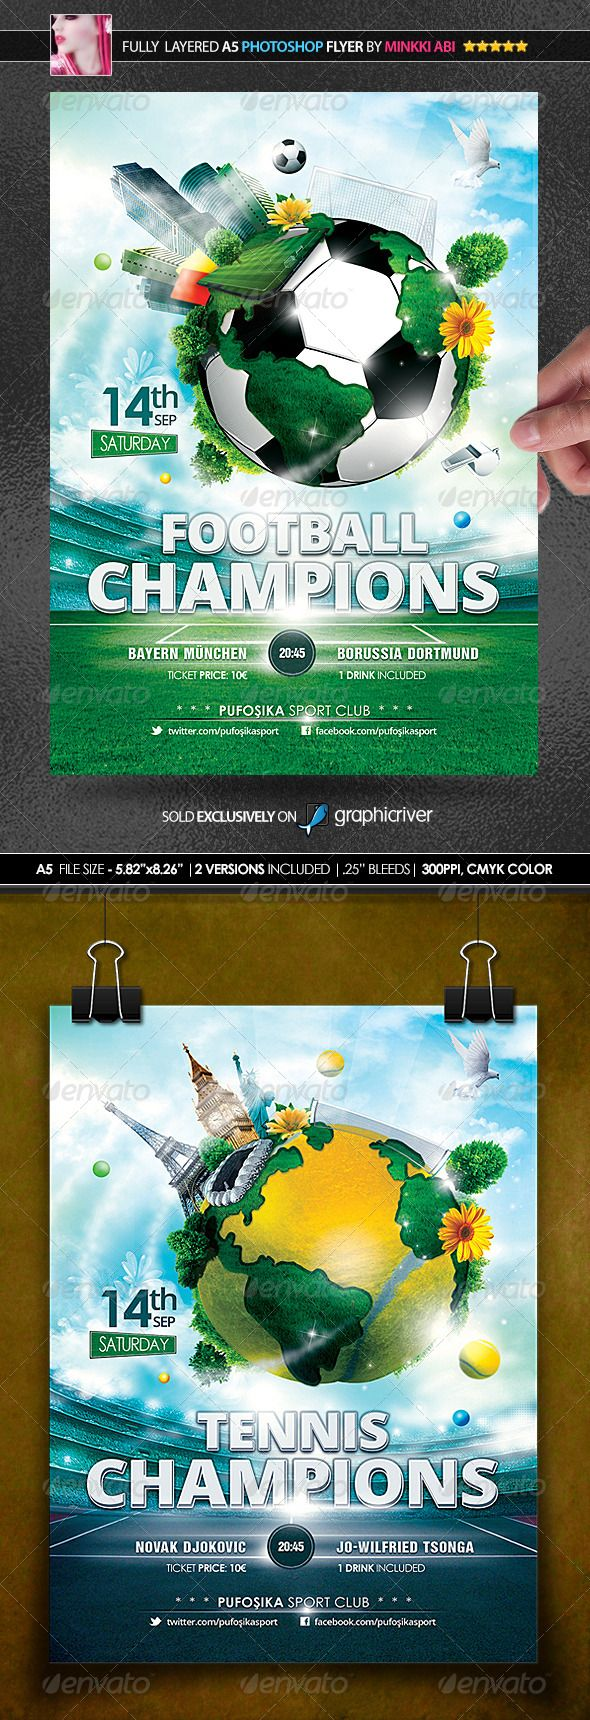 Sports World Vs.1 Poster/Flyer